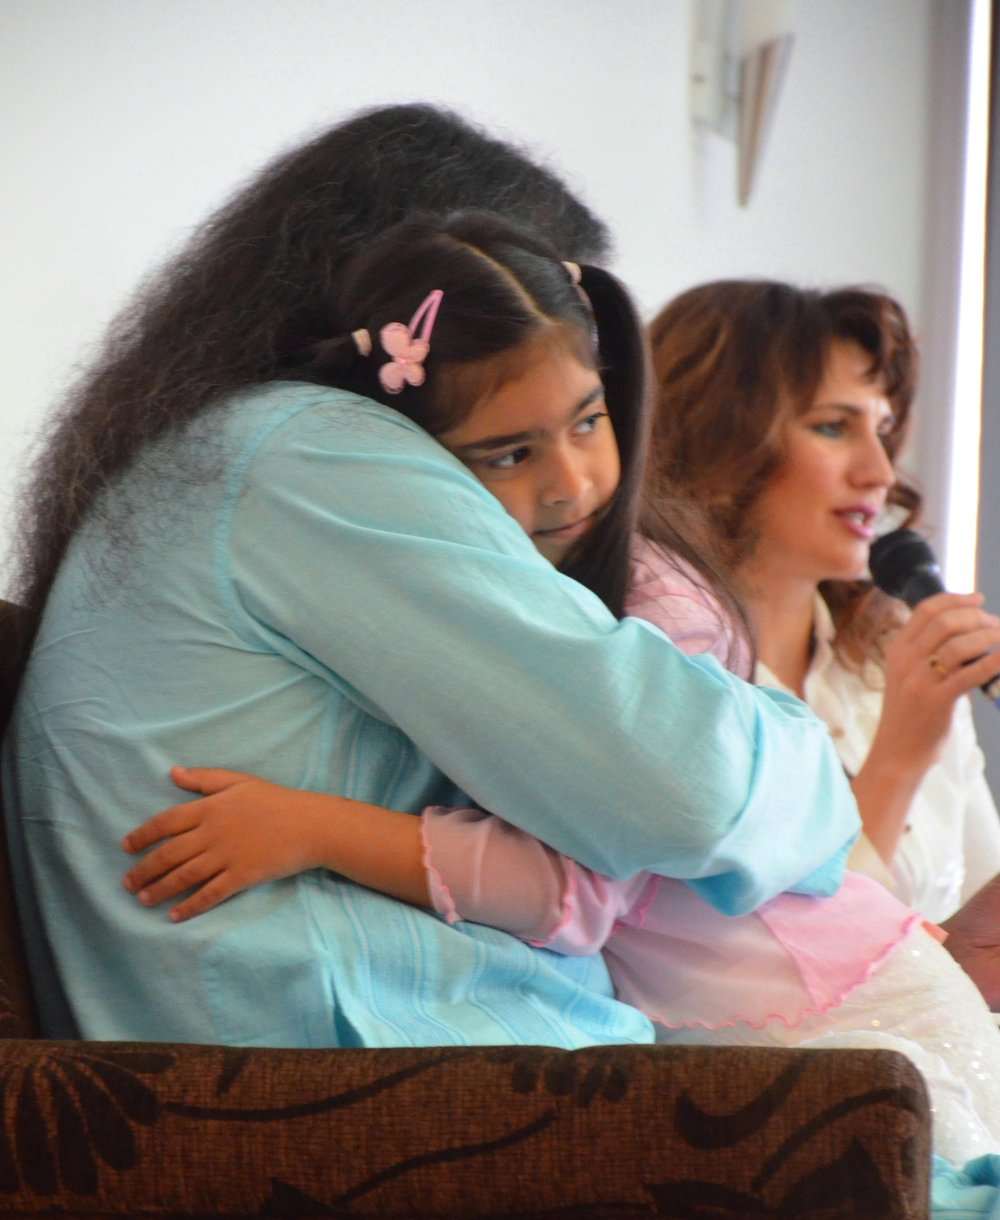 """The M family (Mohanji, Devi and daughter Mila)    Devi says: """"We don't get to spend much time together, but our love is deep and eternal. It includes so many other people around the world, for it is the nature of Love to expand so that we can share our inner wealth and grow together..."""""""